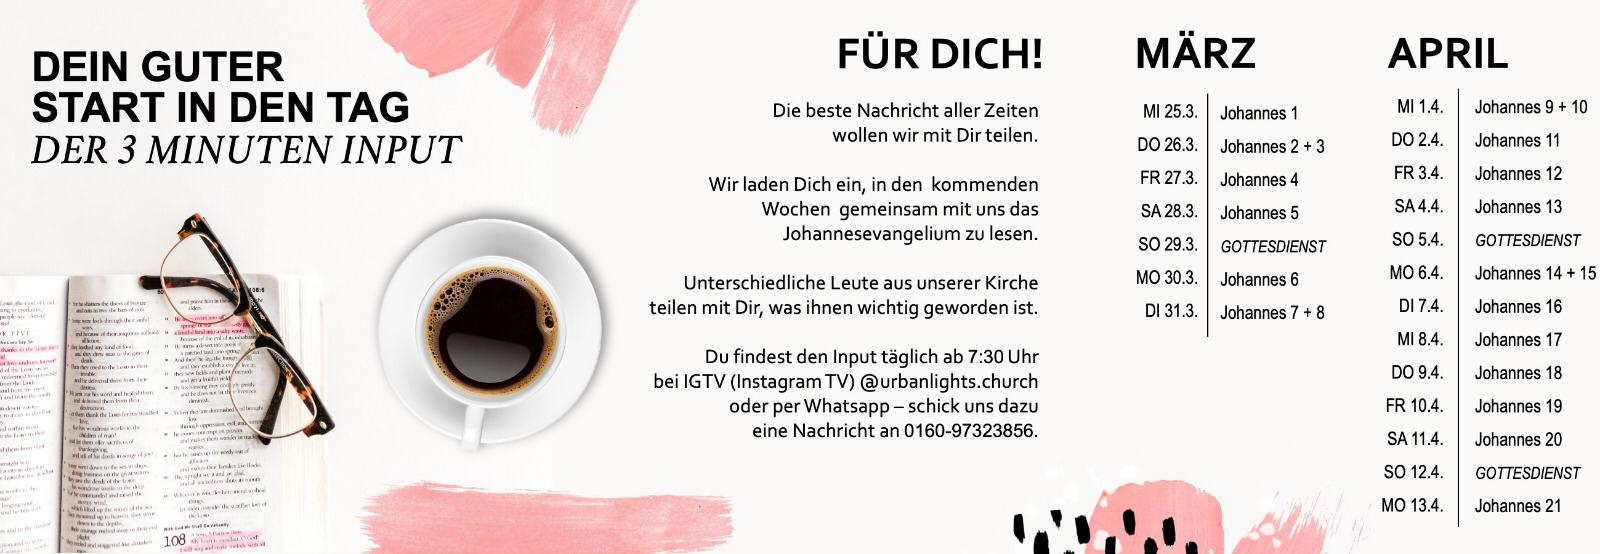 """<strong><span style=""""color:black;font-size:180%"""">Jetzt neu bei uns!</span></strong>"""